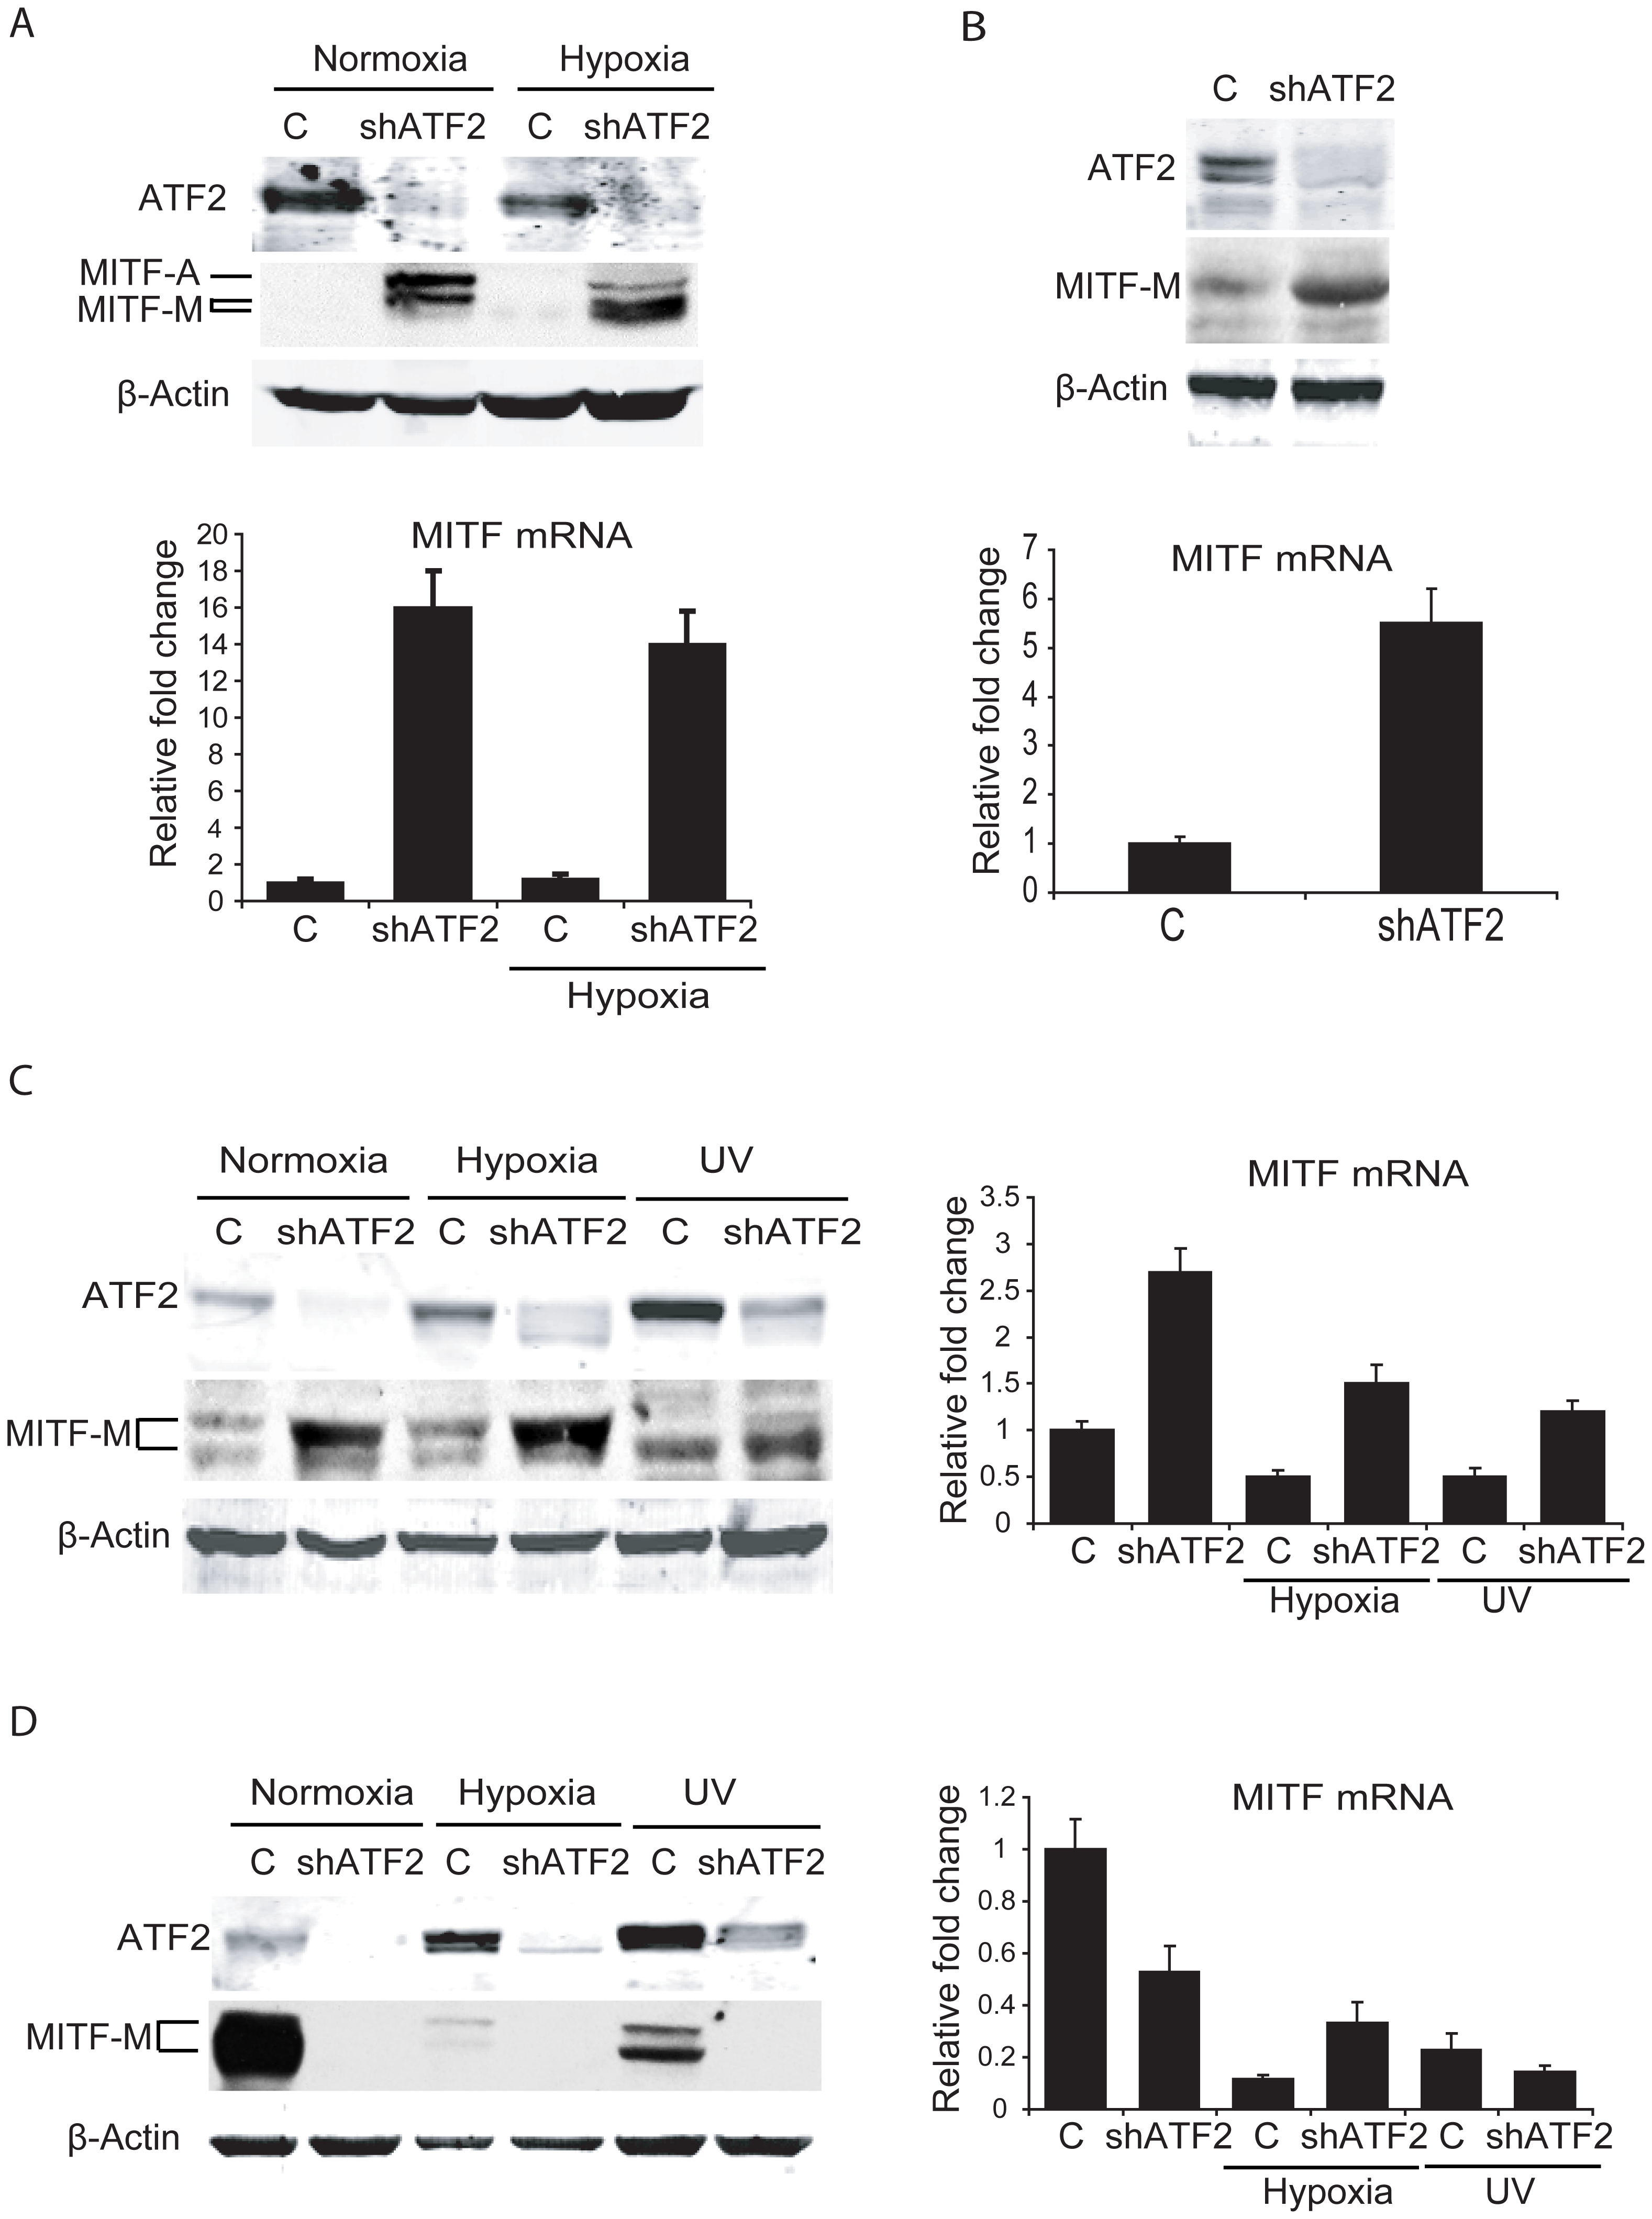 ATF2 regulates MITF in melanocytes and melanoma cells.